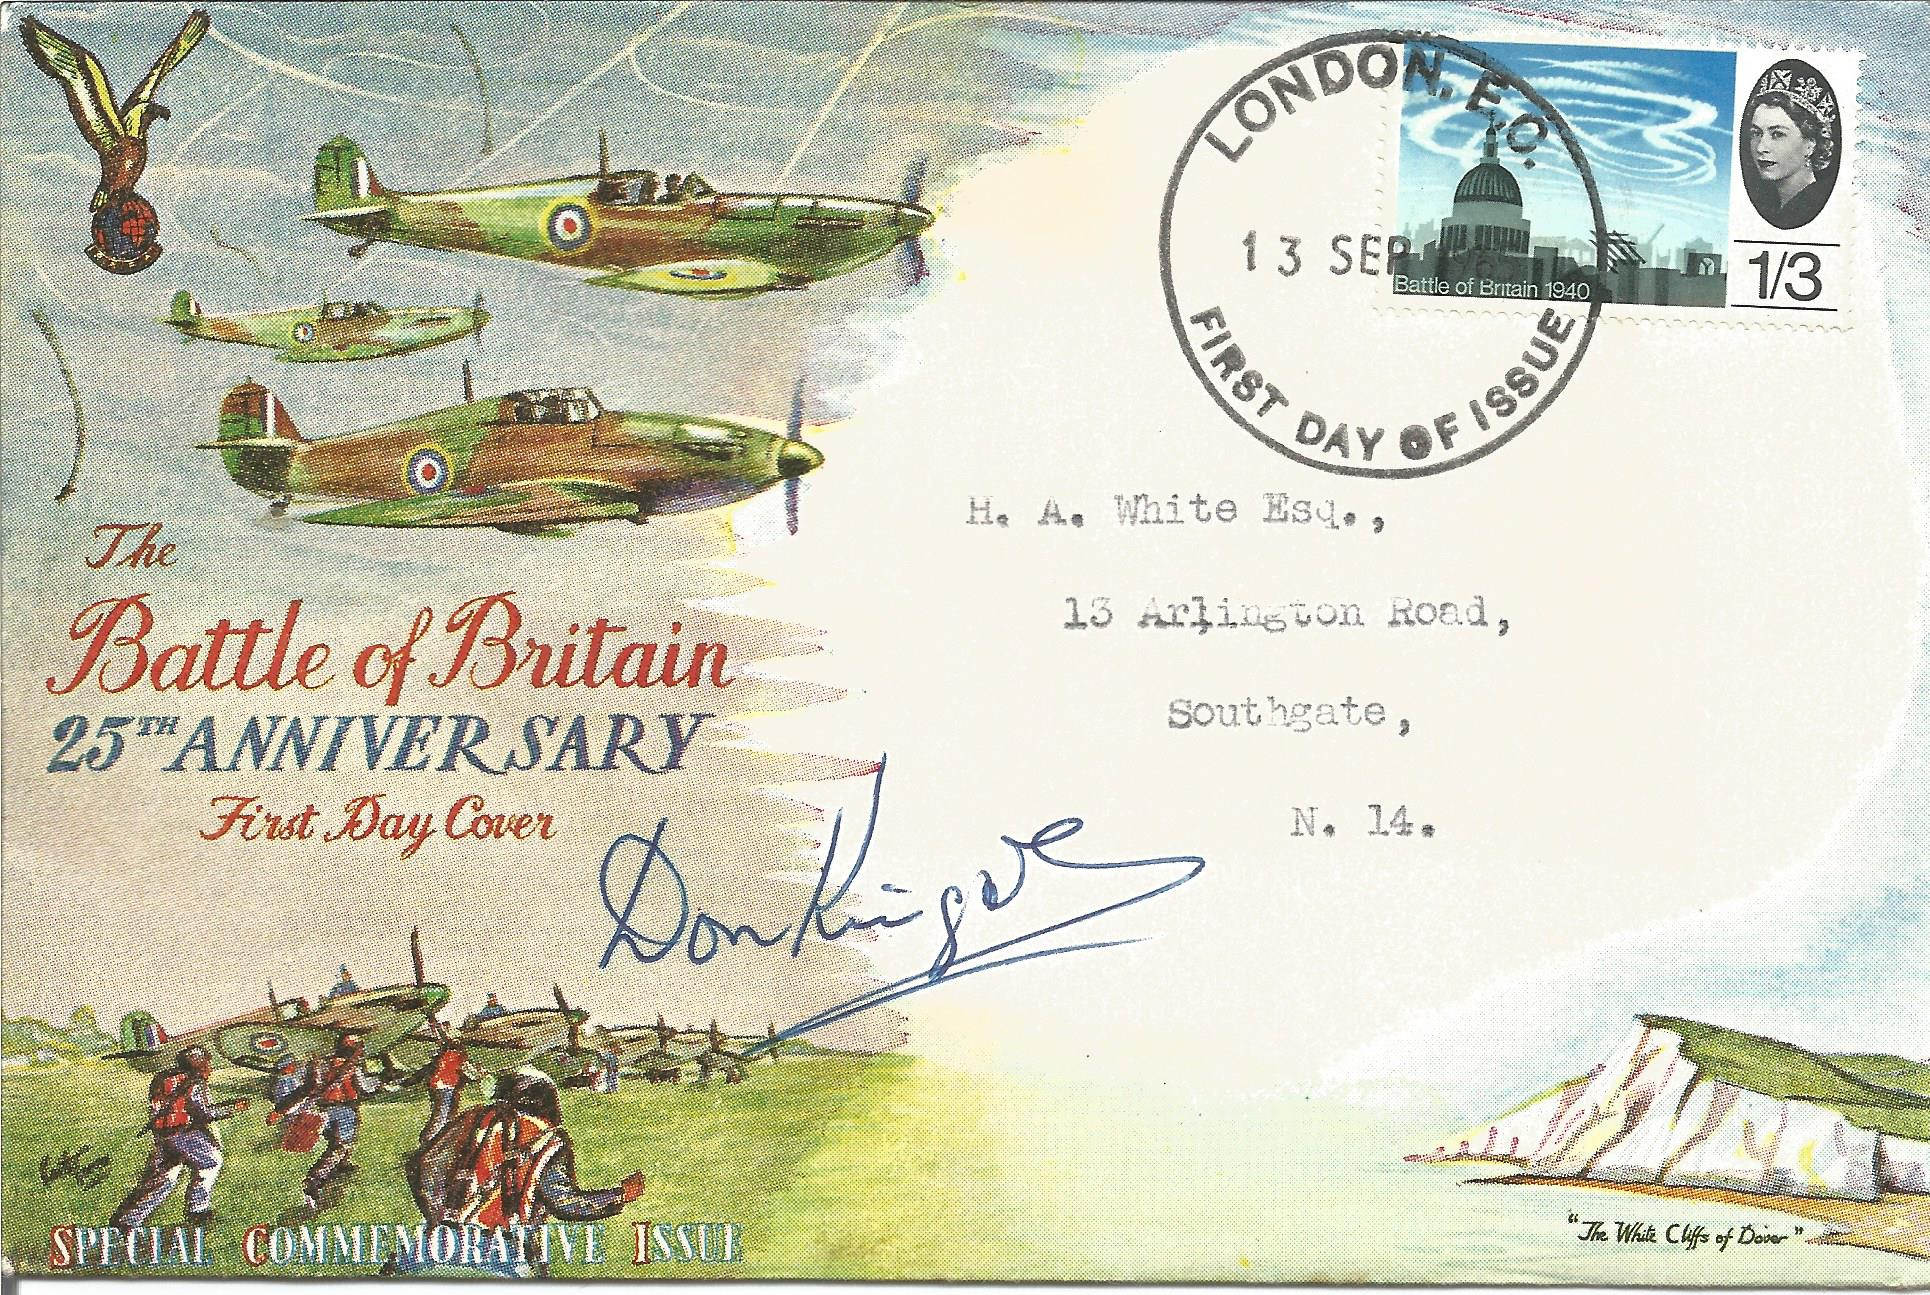 WW2, Donald Kingaby Battle of Britain 25th anniversary special commemorative issue first day cover